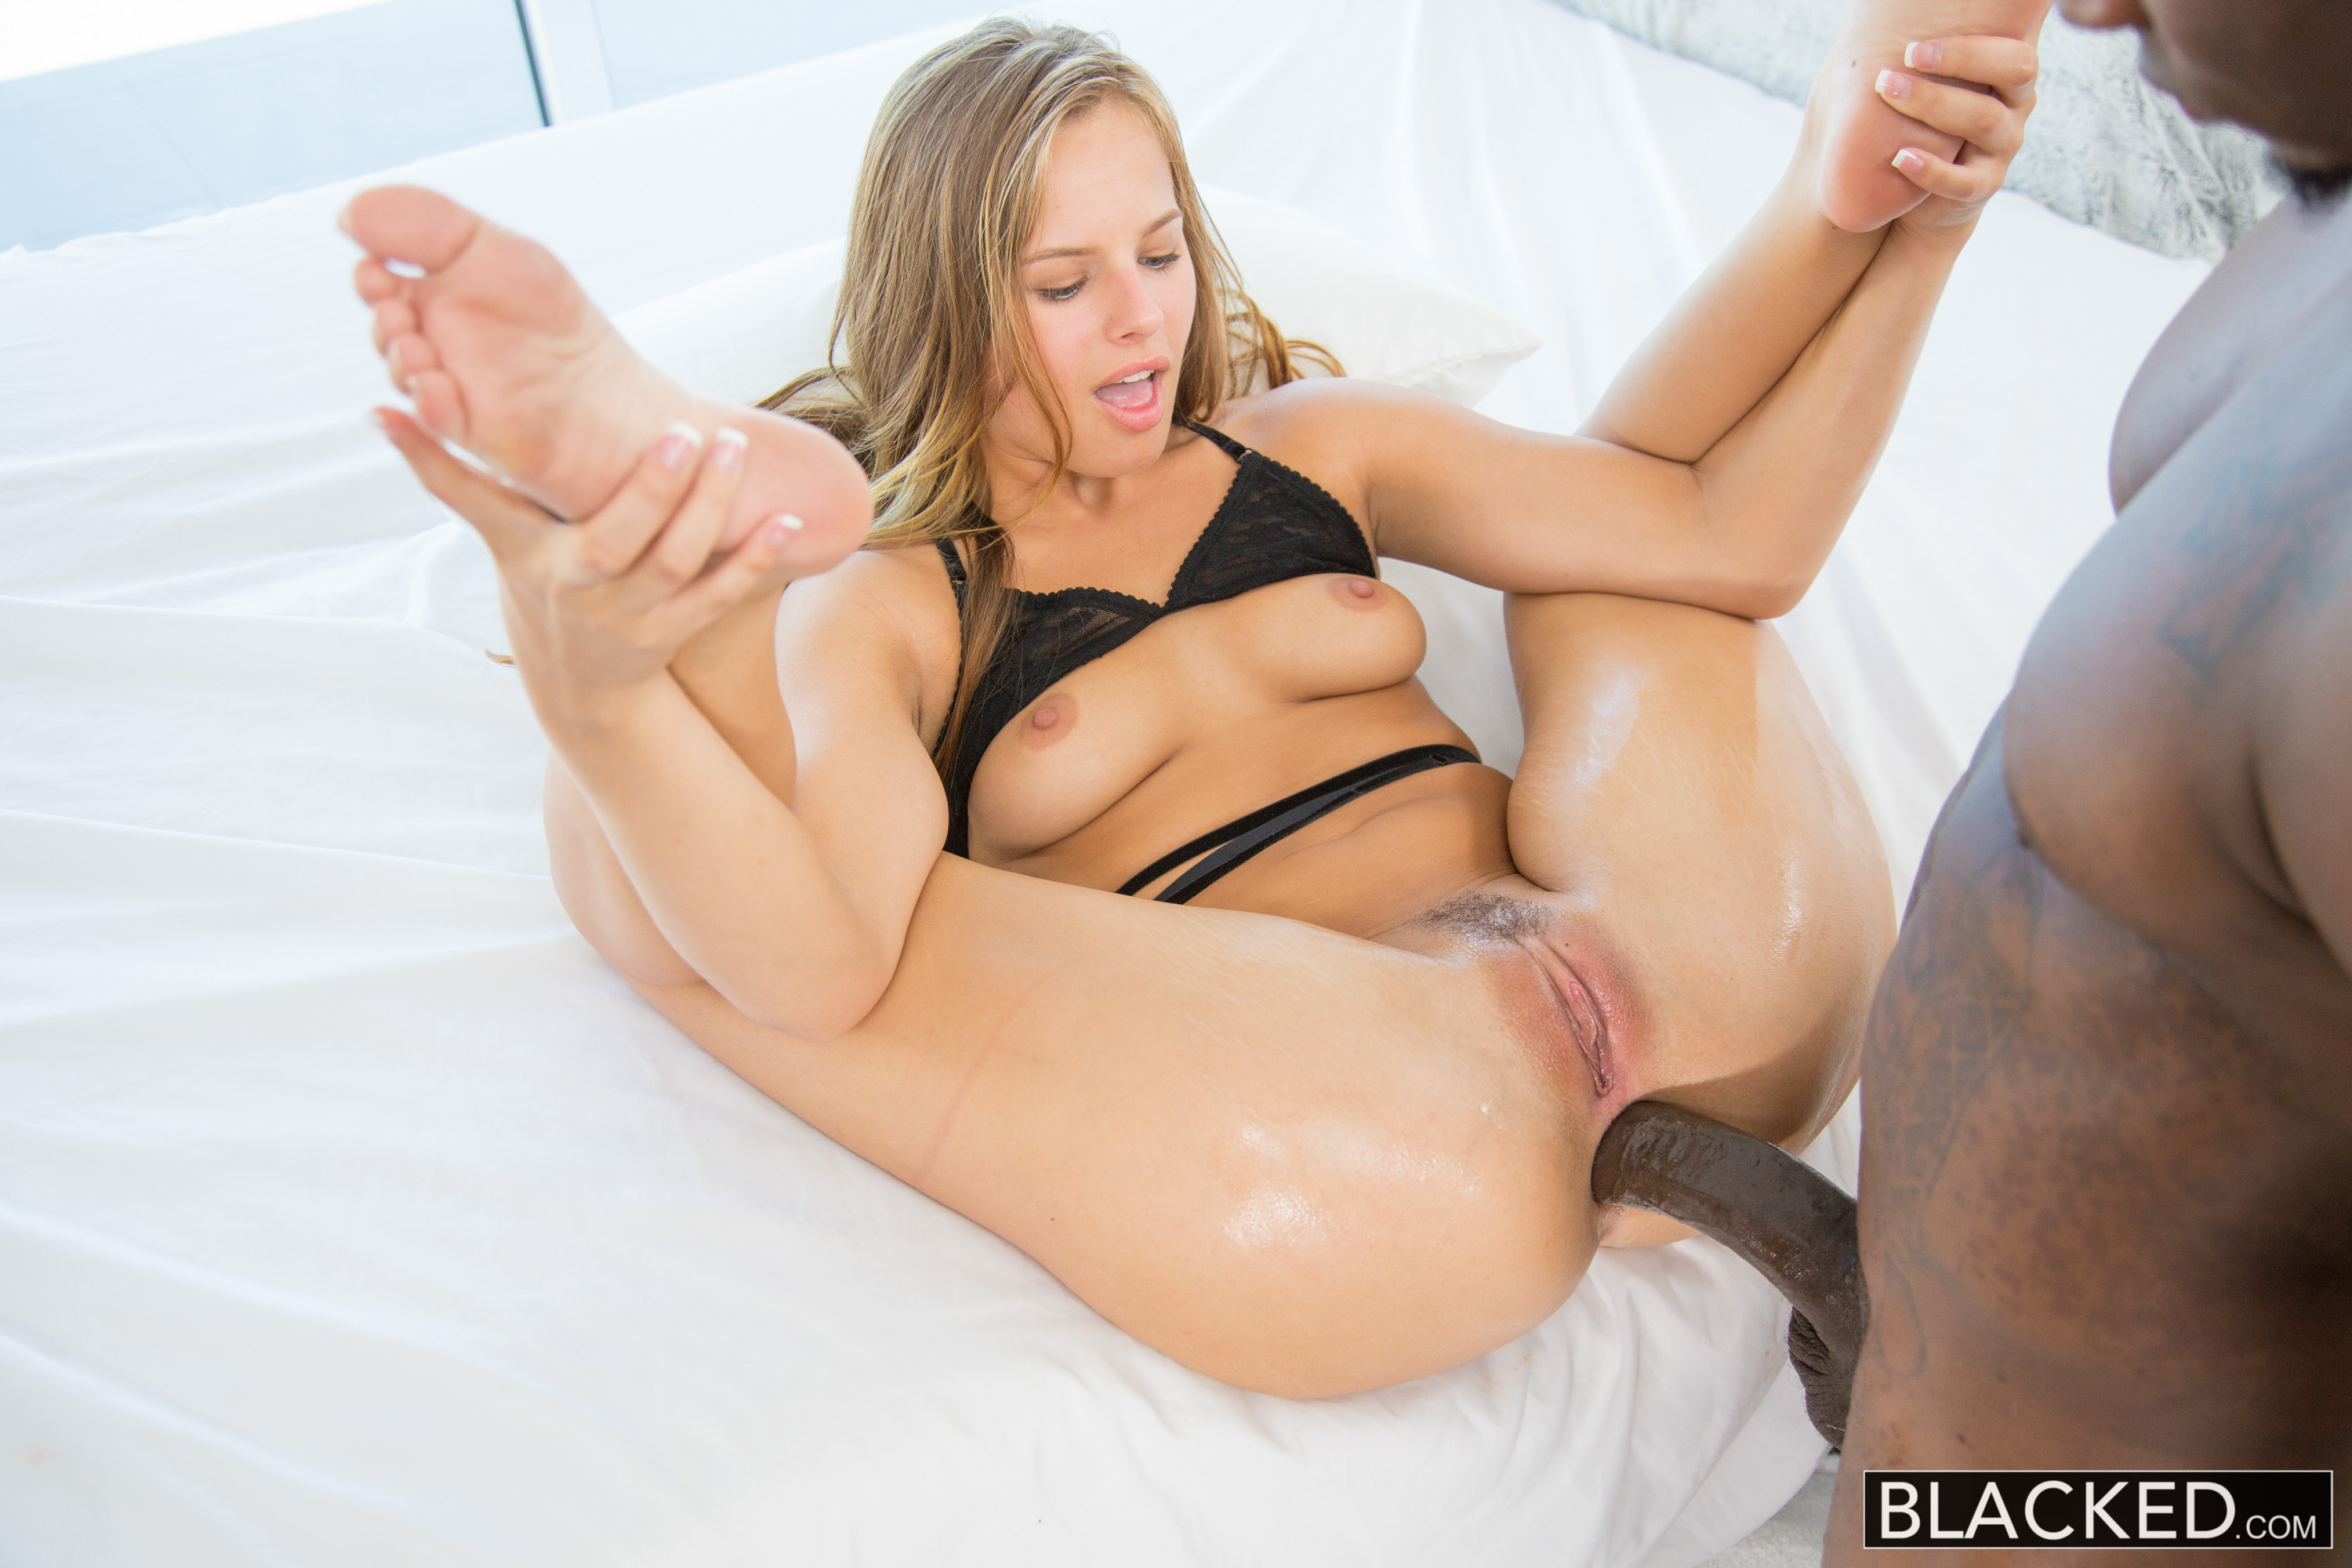 Cum swallow jillian reynolds nude sex